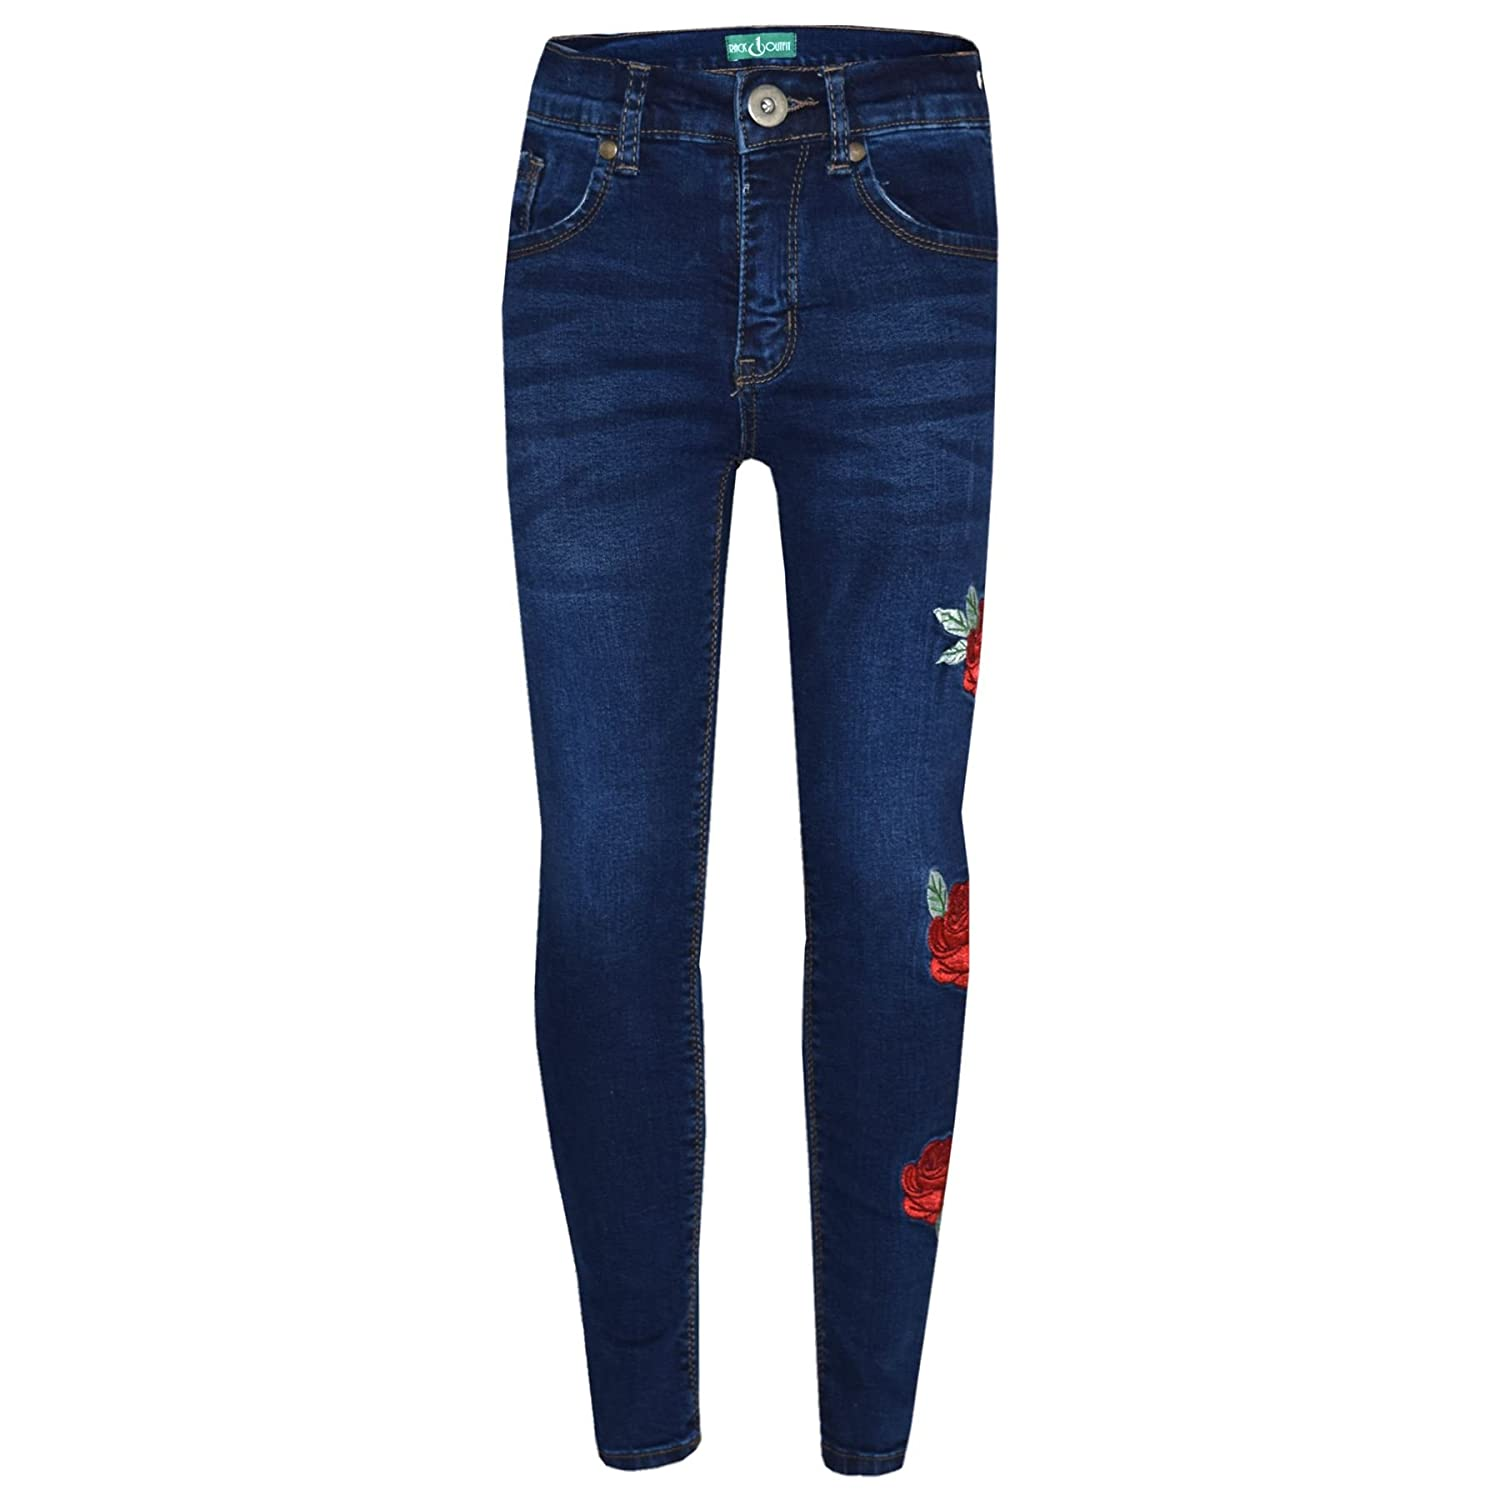 A2Z 4 Kids® Girls Stretchy Jeans Kids Rose Embroidered Denim Pants Fashion Trousers Jeggings Age 5 6 7 8 9 10 11 12 13 Years